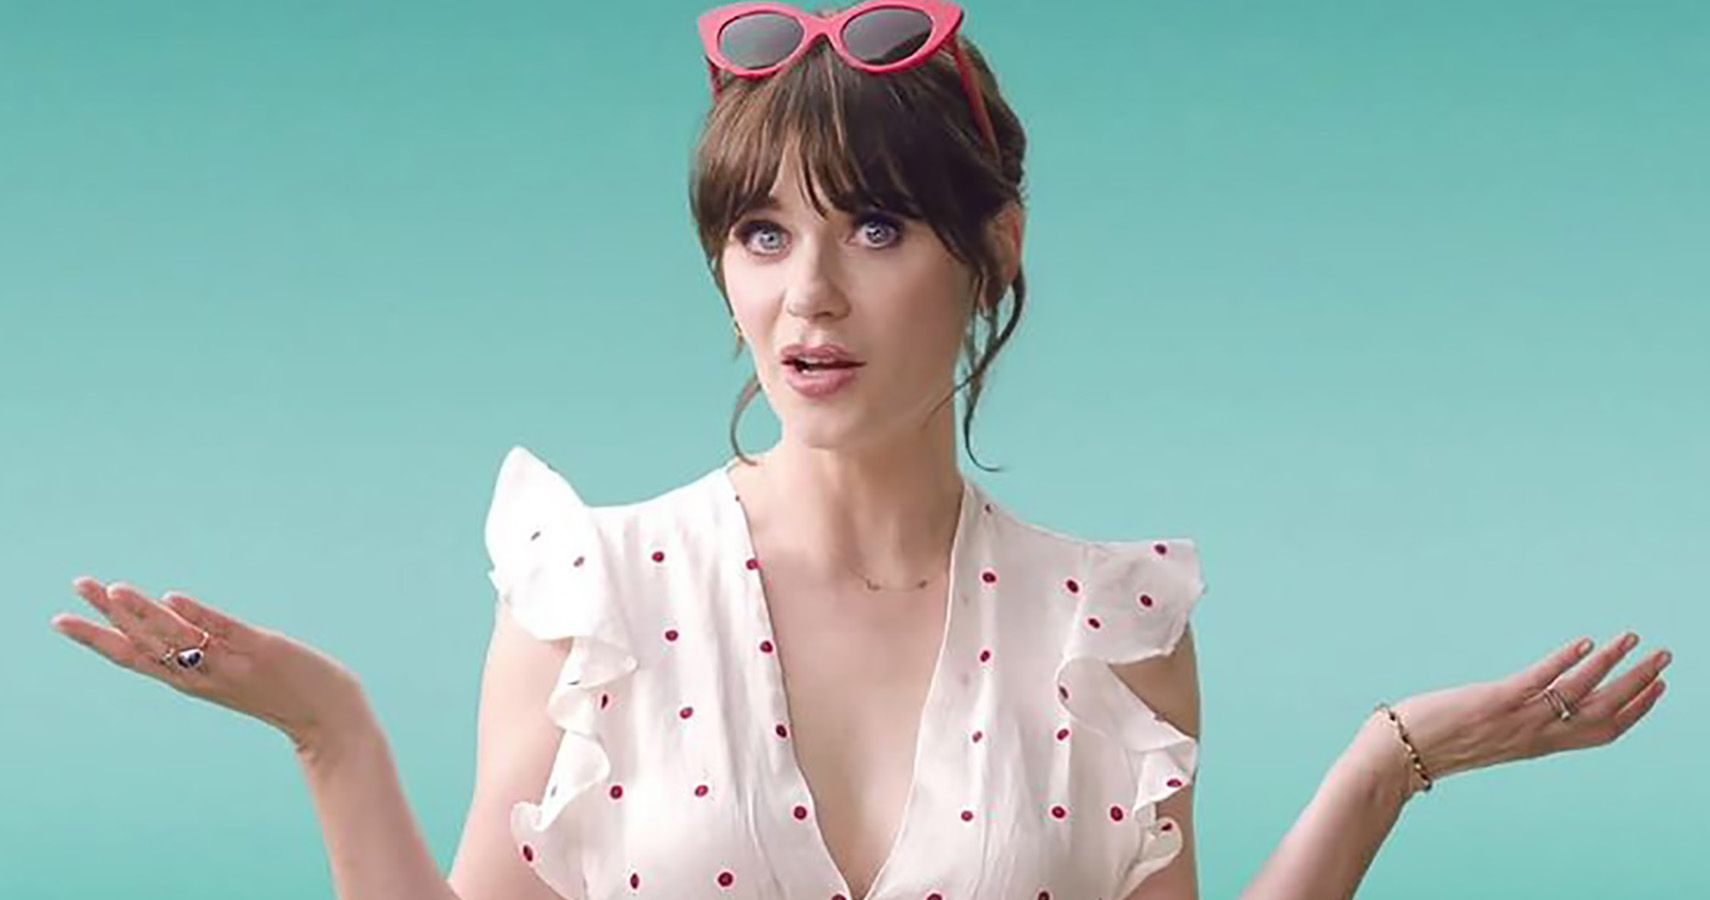 10 Things You Didn't Know About Zooey Deschanel | TheTalko